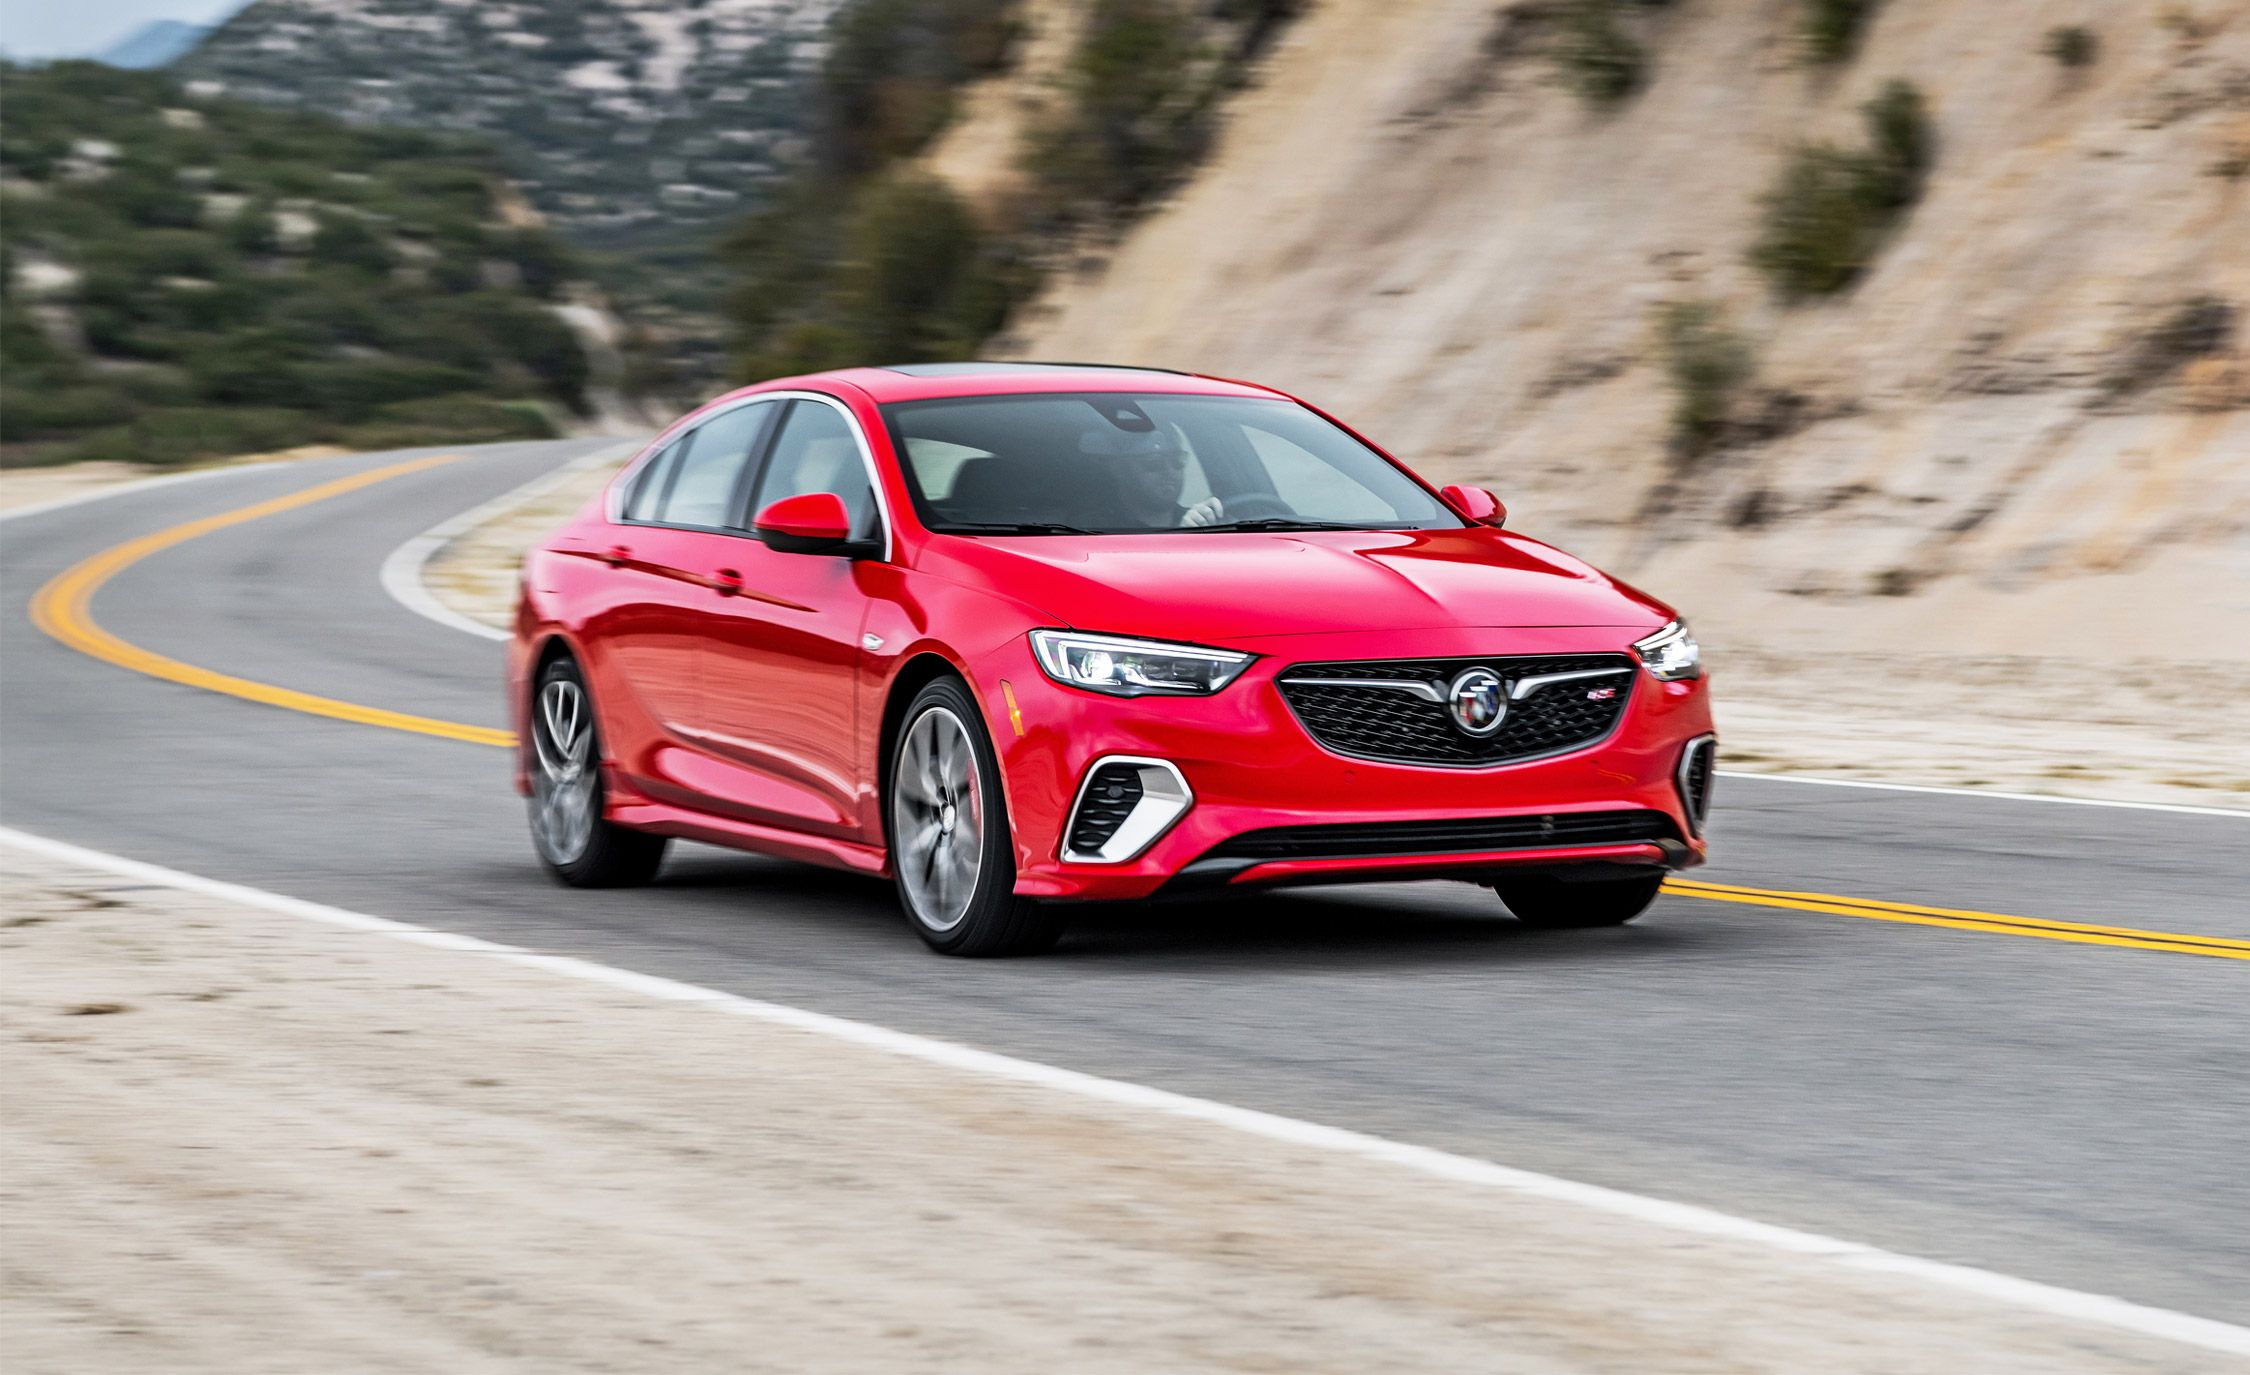 2018 Buick Regal Gs Test Well Executed But Not Particularly Sporty Review Car And Driver